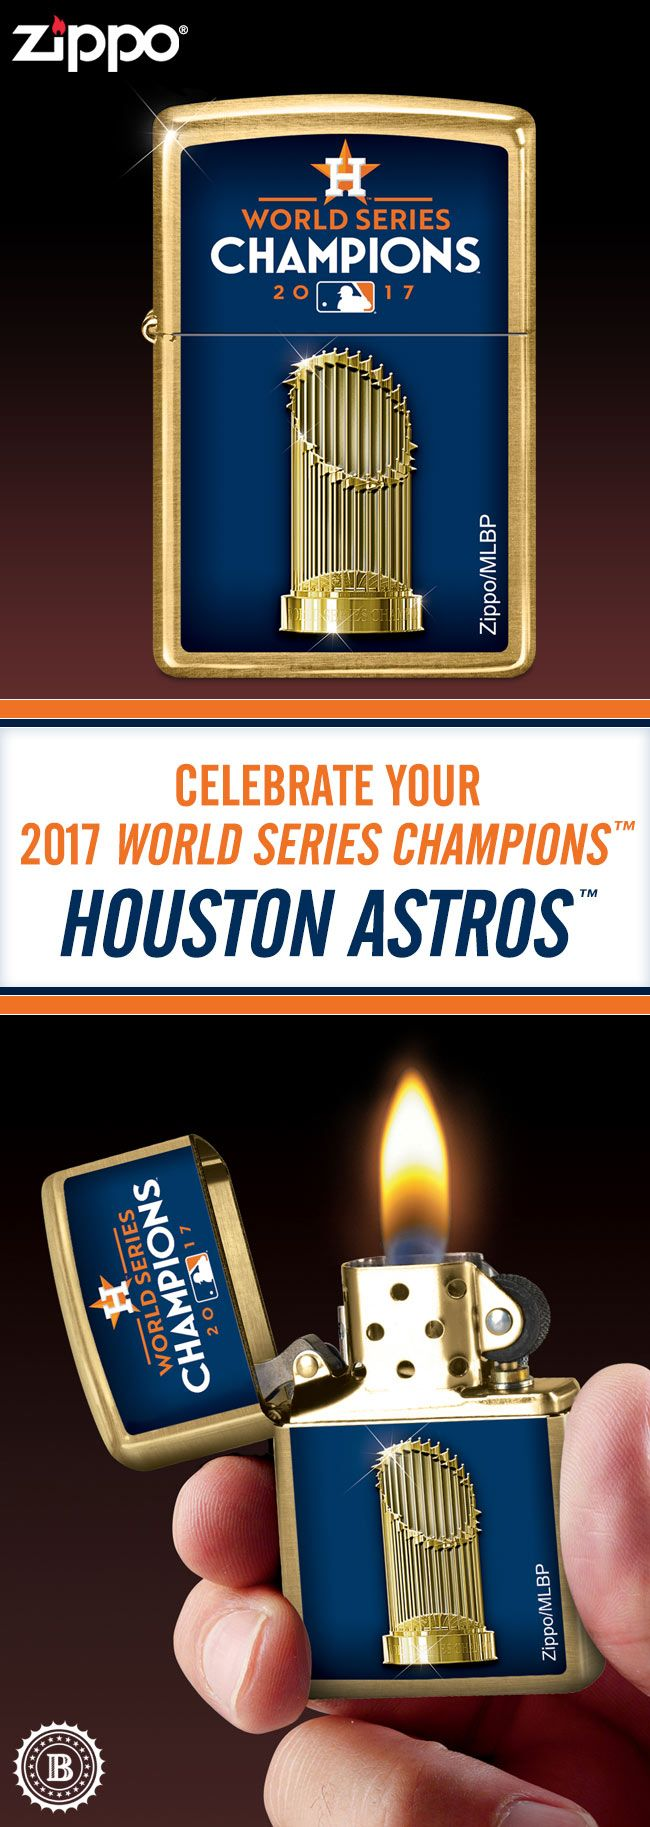 Light up a fine tribute to your 2017 World Series Champions™ with this Houston Astros™ Zippo® lighter. Made in the U.S.A., it features a raised-relief sculptural World Series™ Commissioners Trophy™, complete with golden flagpoles and pennant flags. Limited edition of only 5,000!